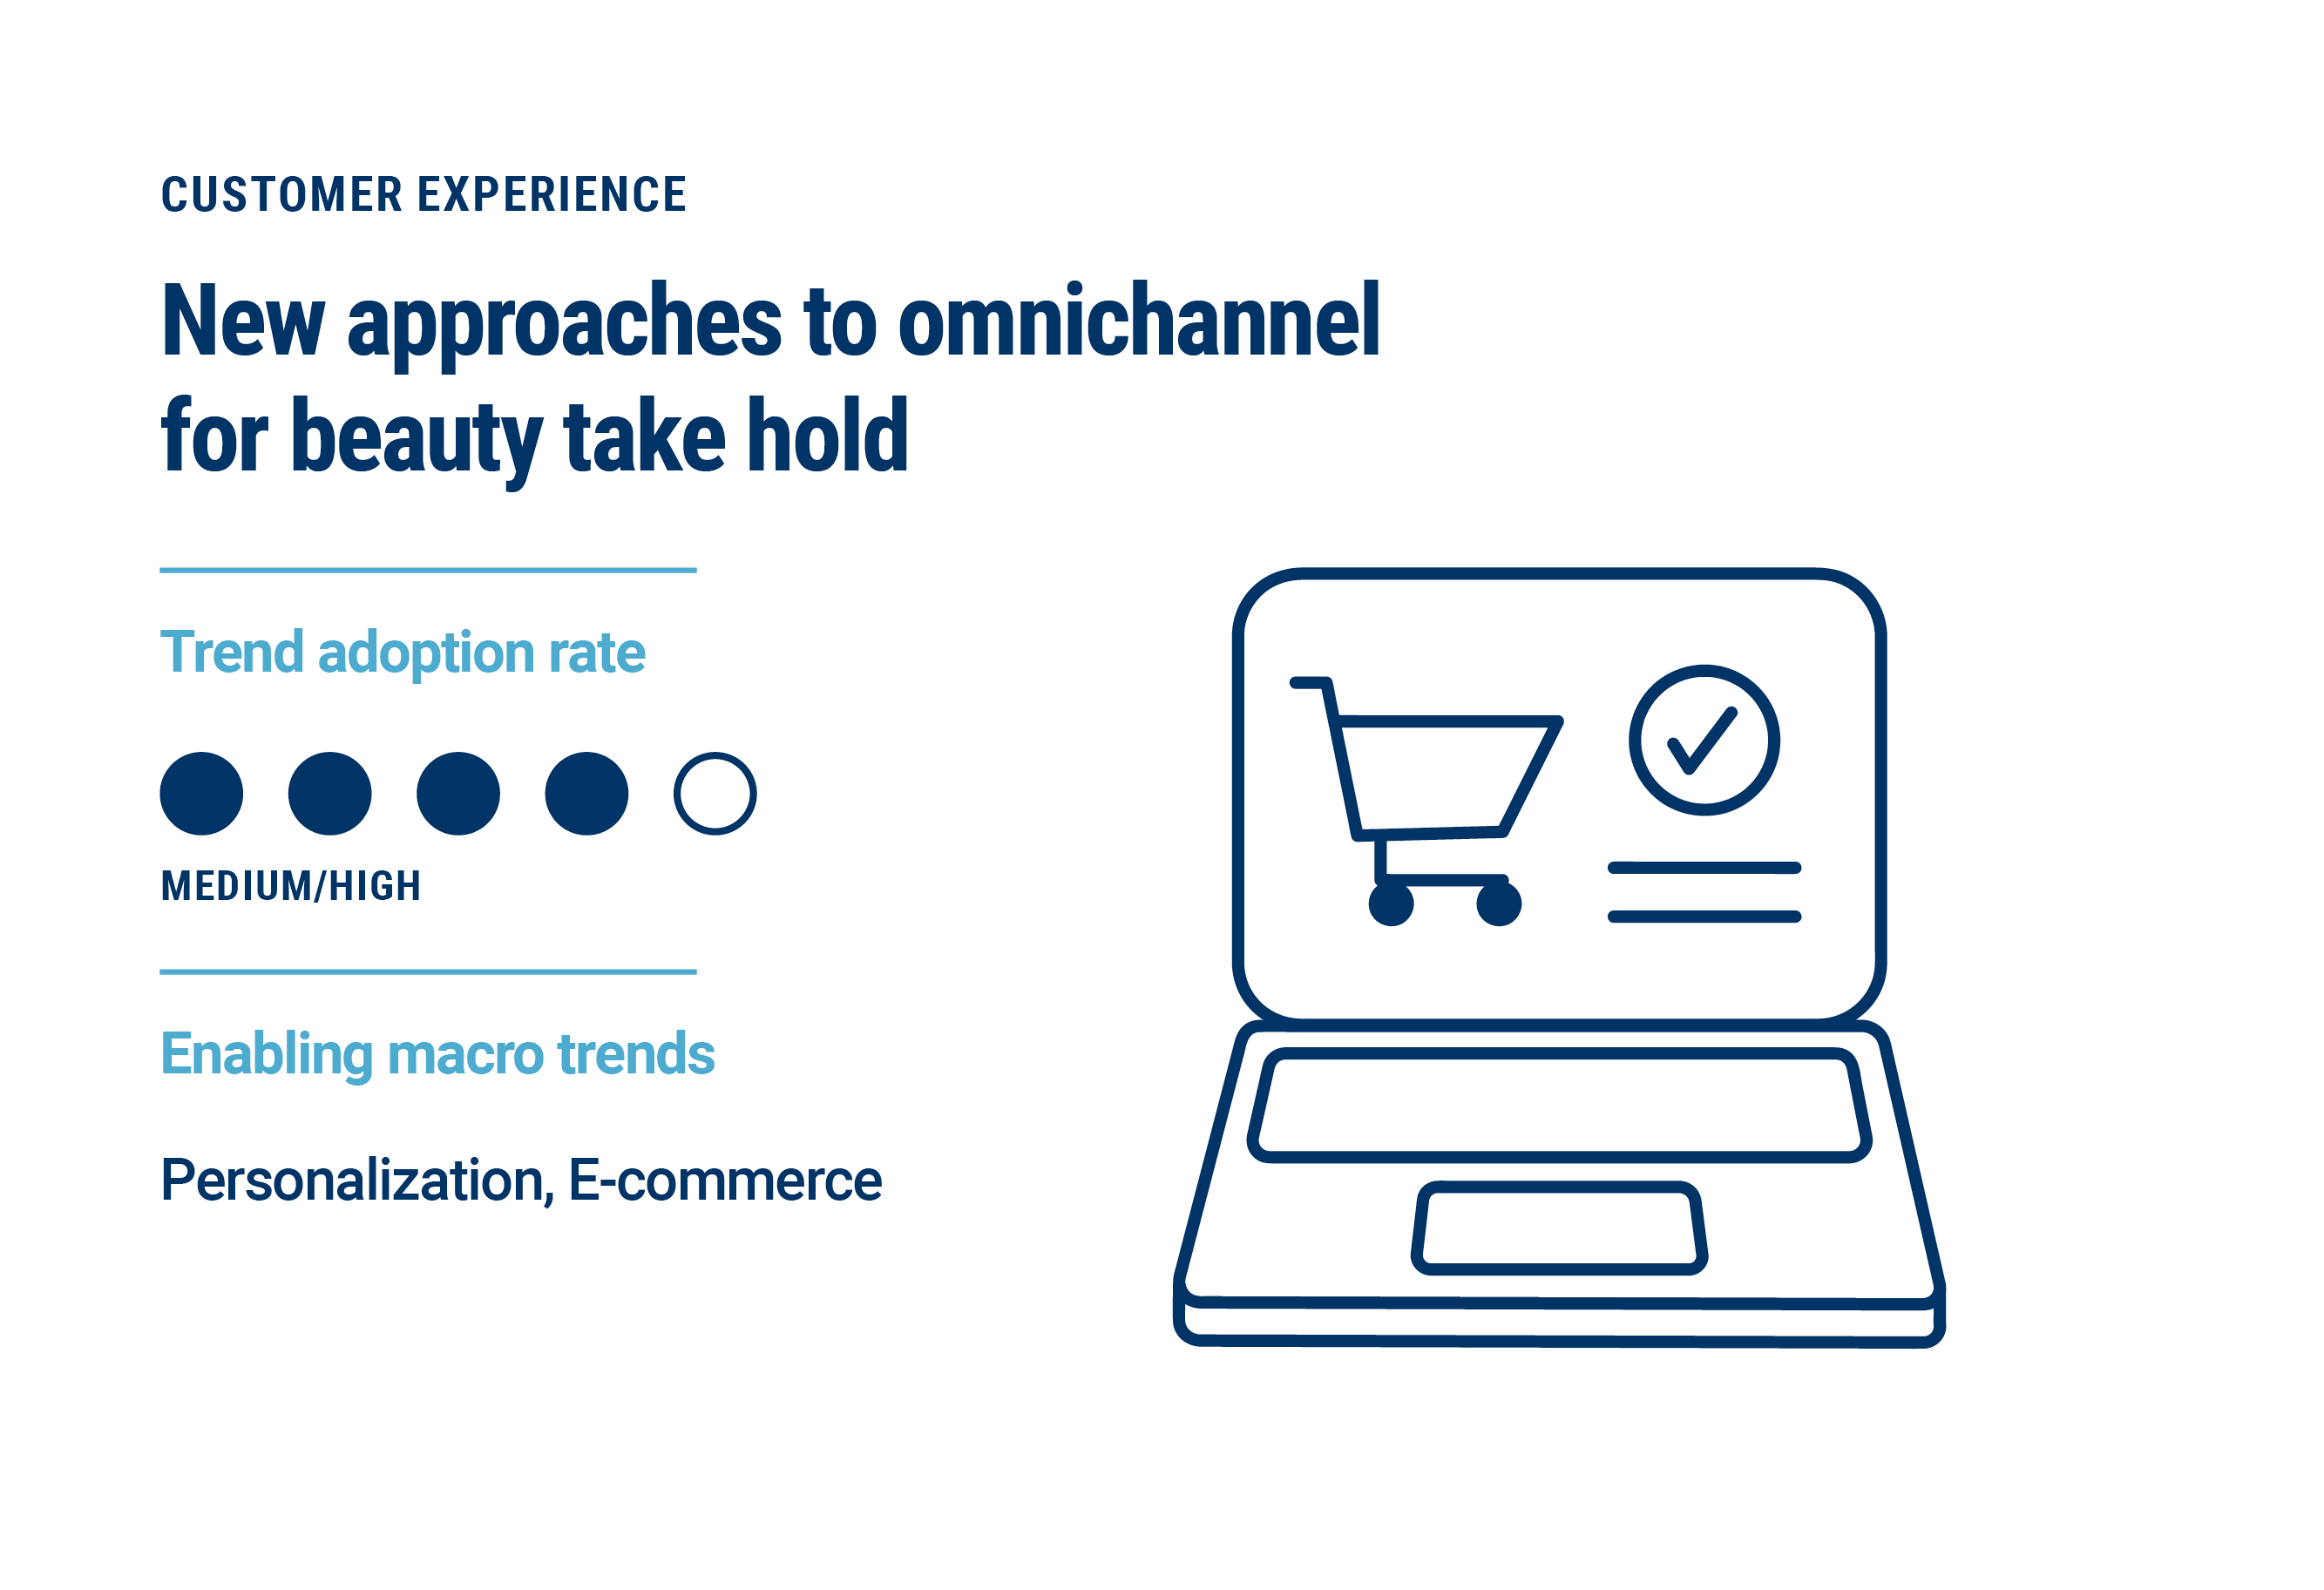 New approaches to omnichannel for beauty take hold